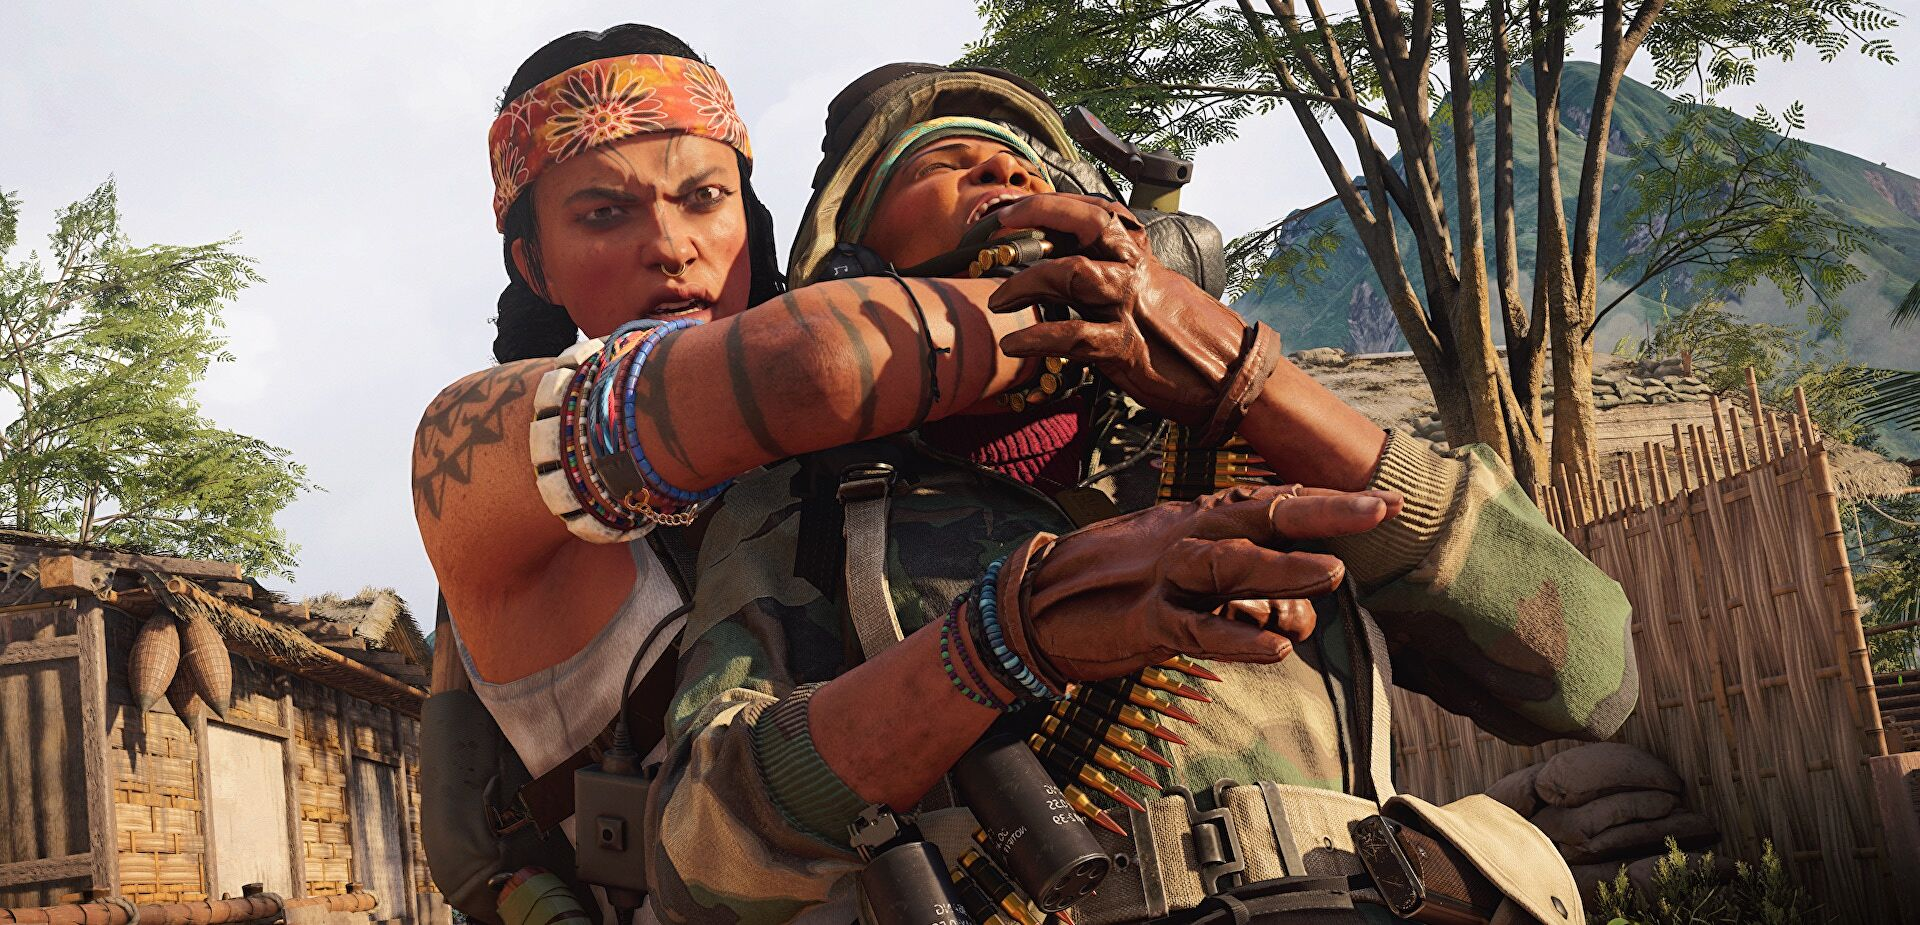 How to unlock the Machete in Warzone: requirements and best loadout - Download How to unlock the Machete in Warzone: requirements and best loadout for FREE - Free Cheats for Games